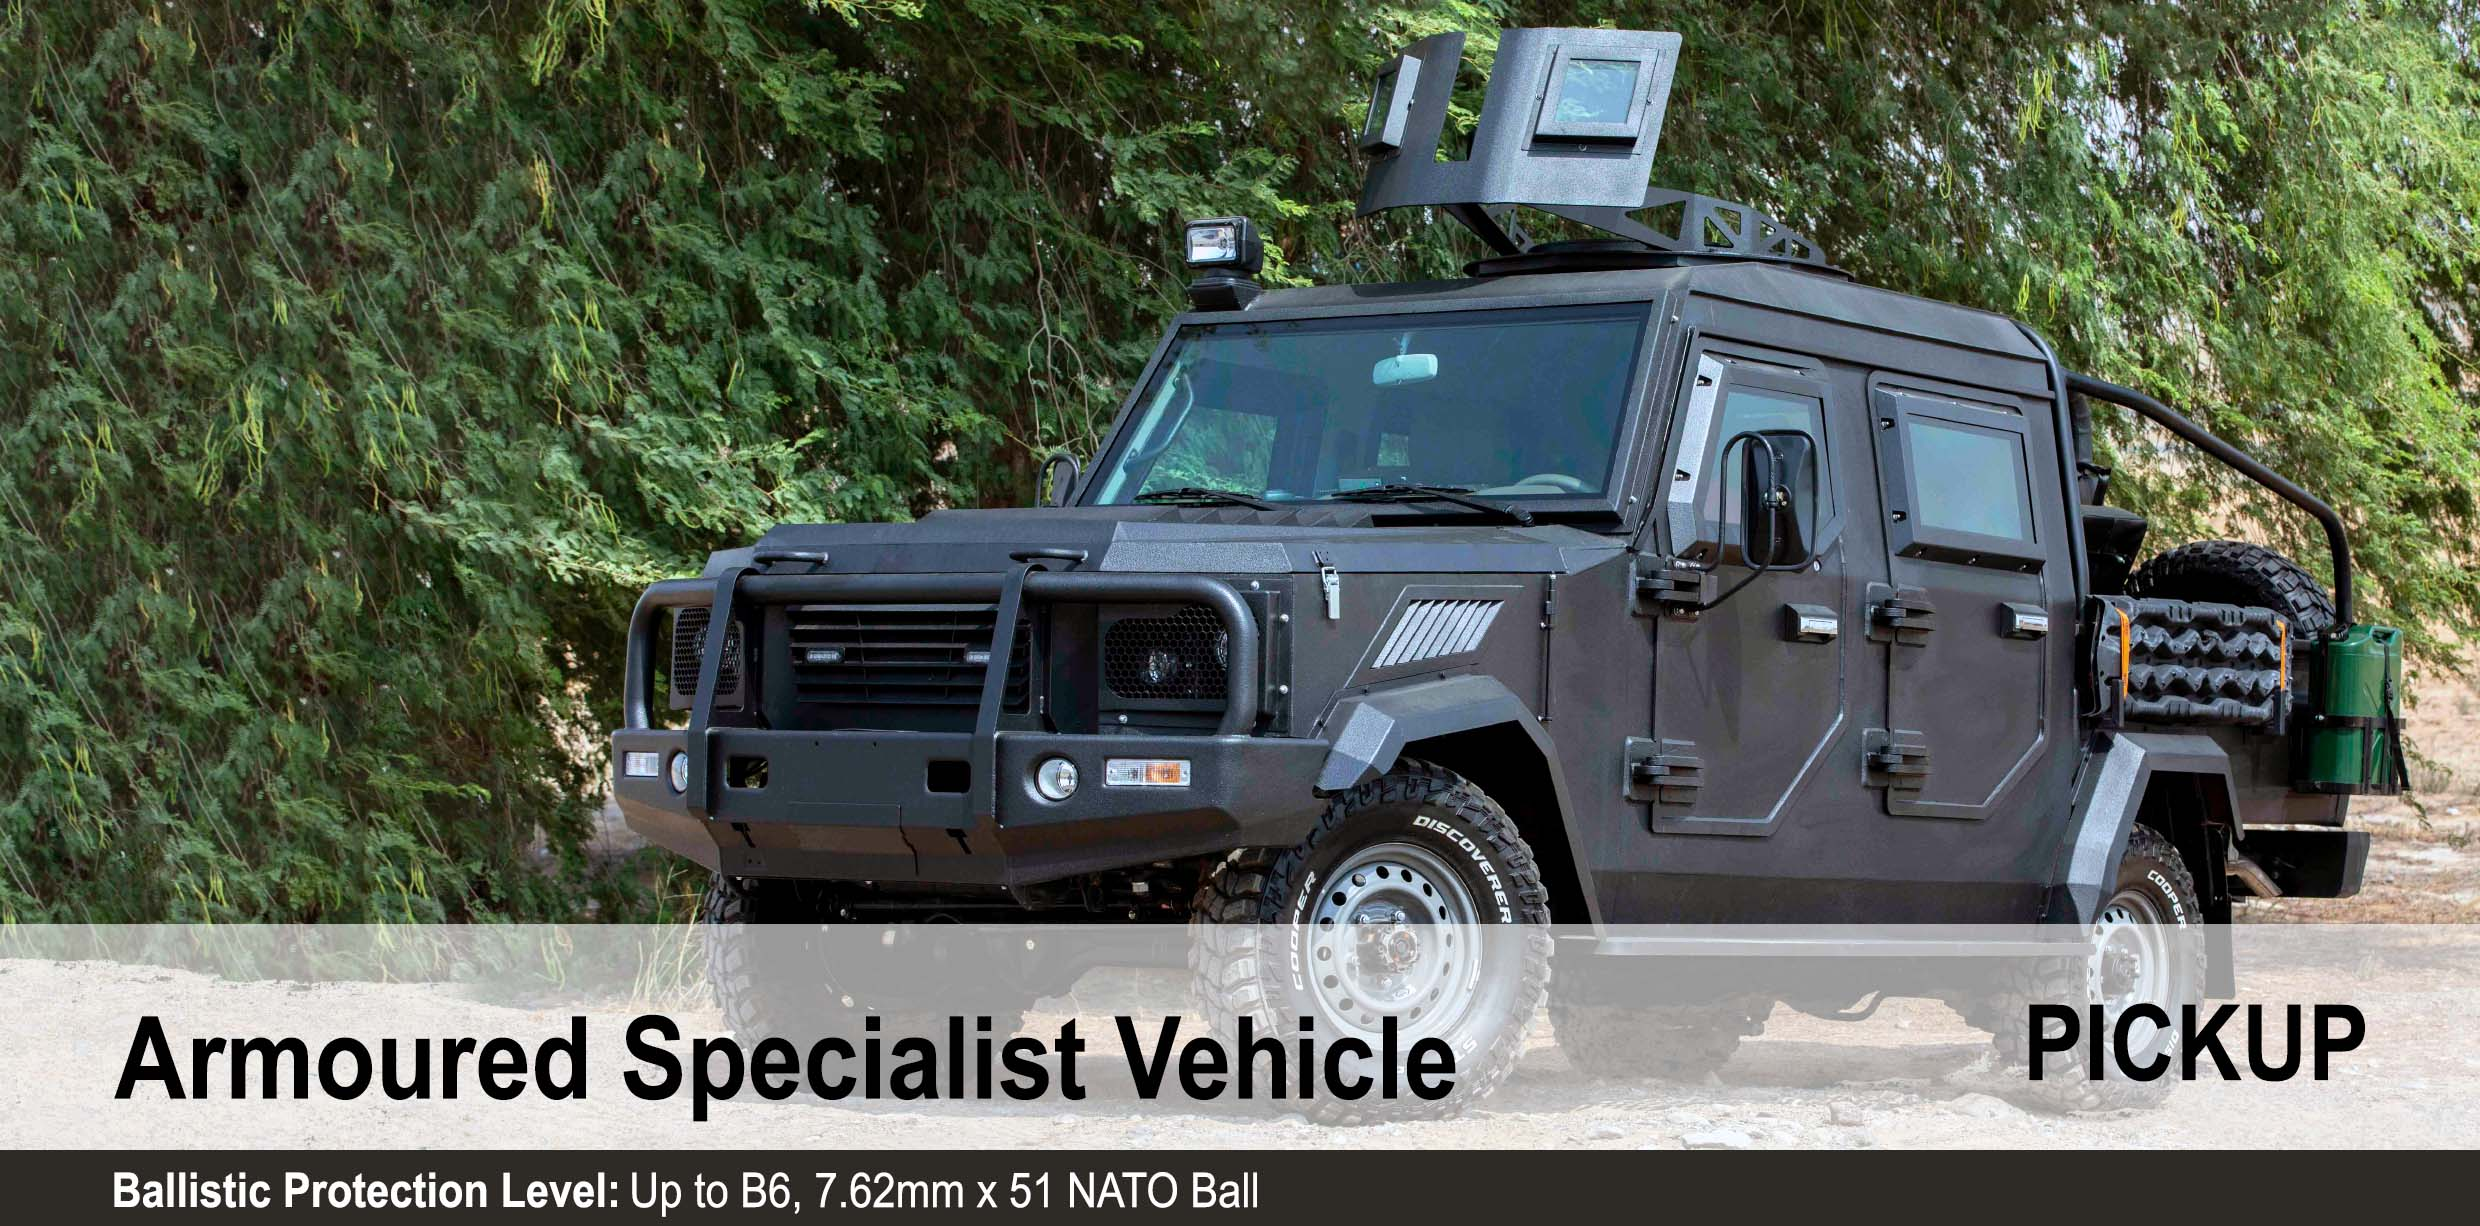 Mahindra Armored Specialist Vehicle, Armoured Pickup truck